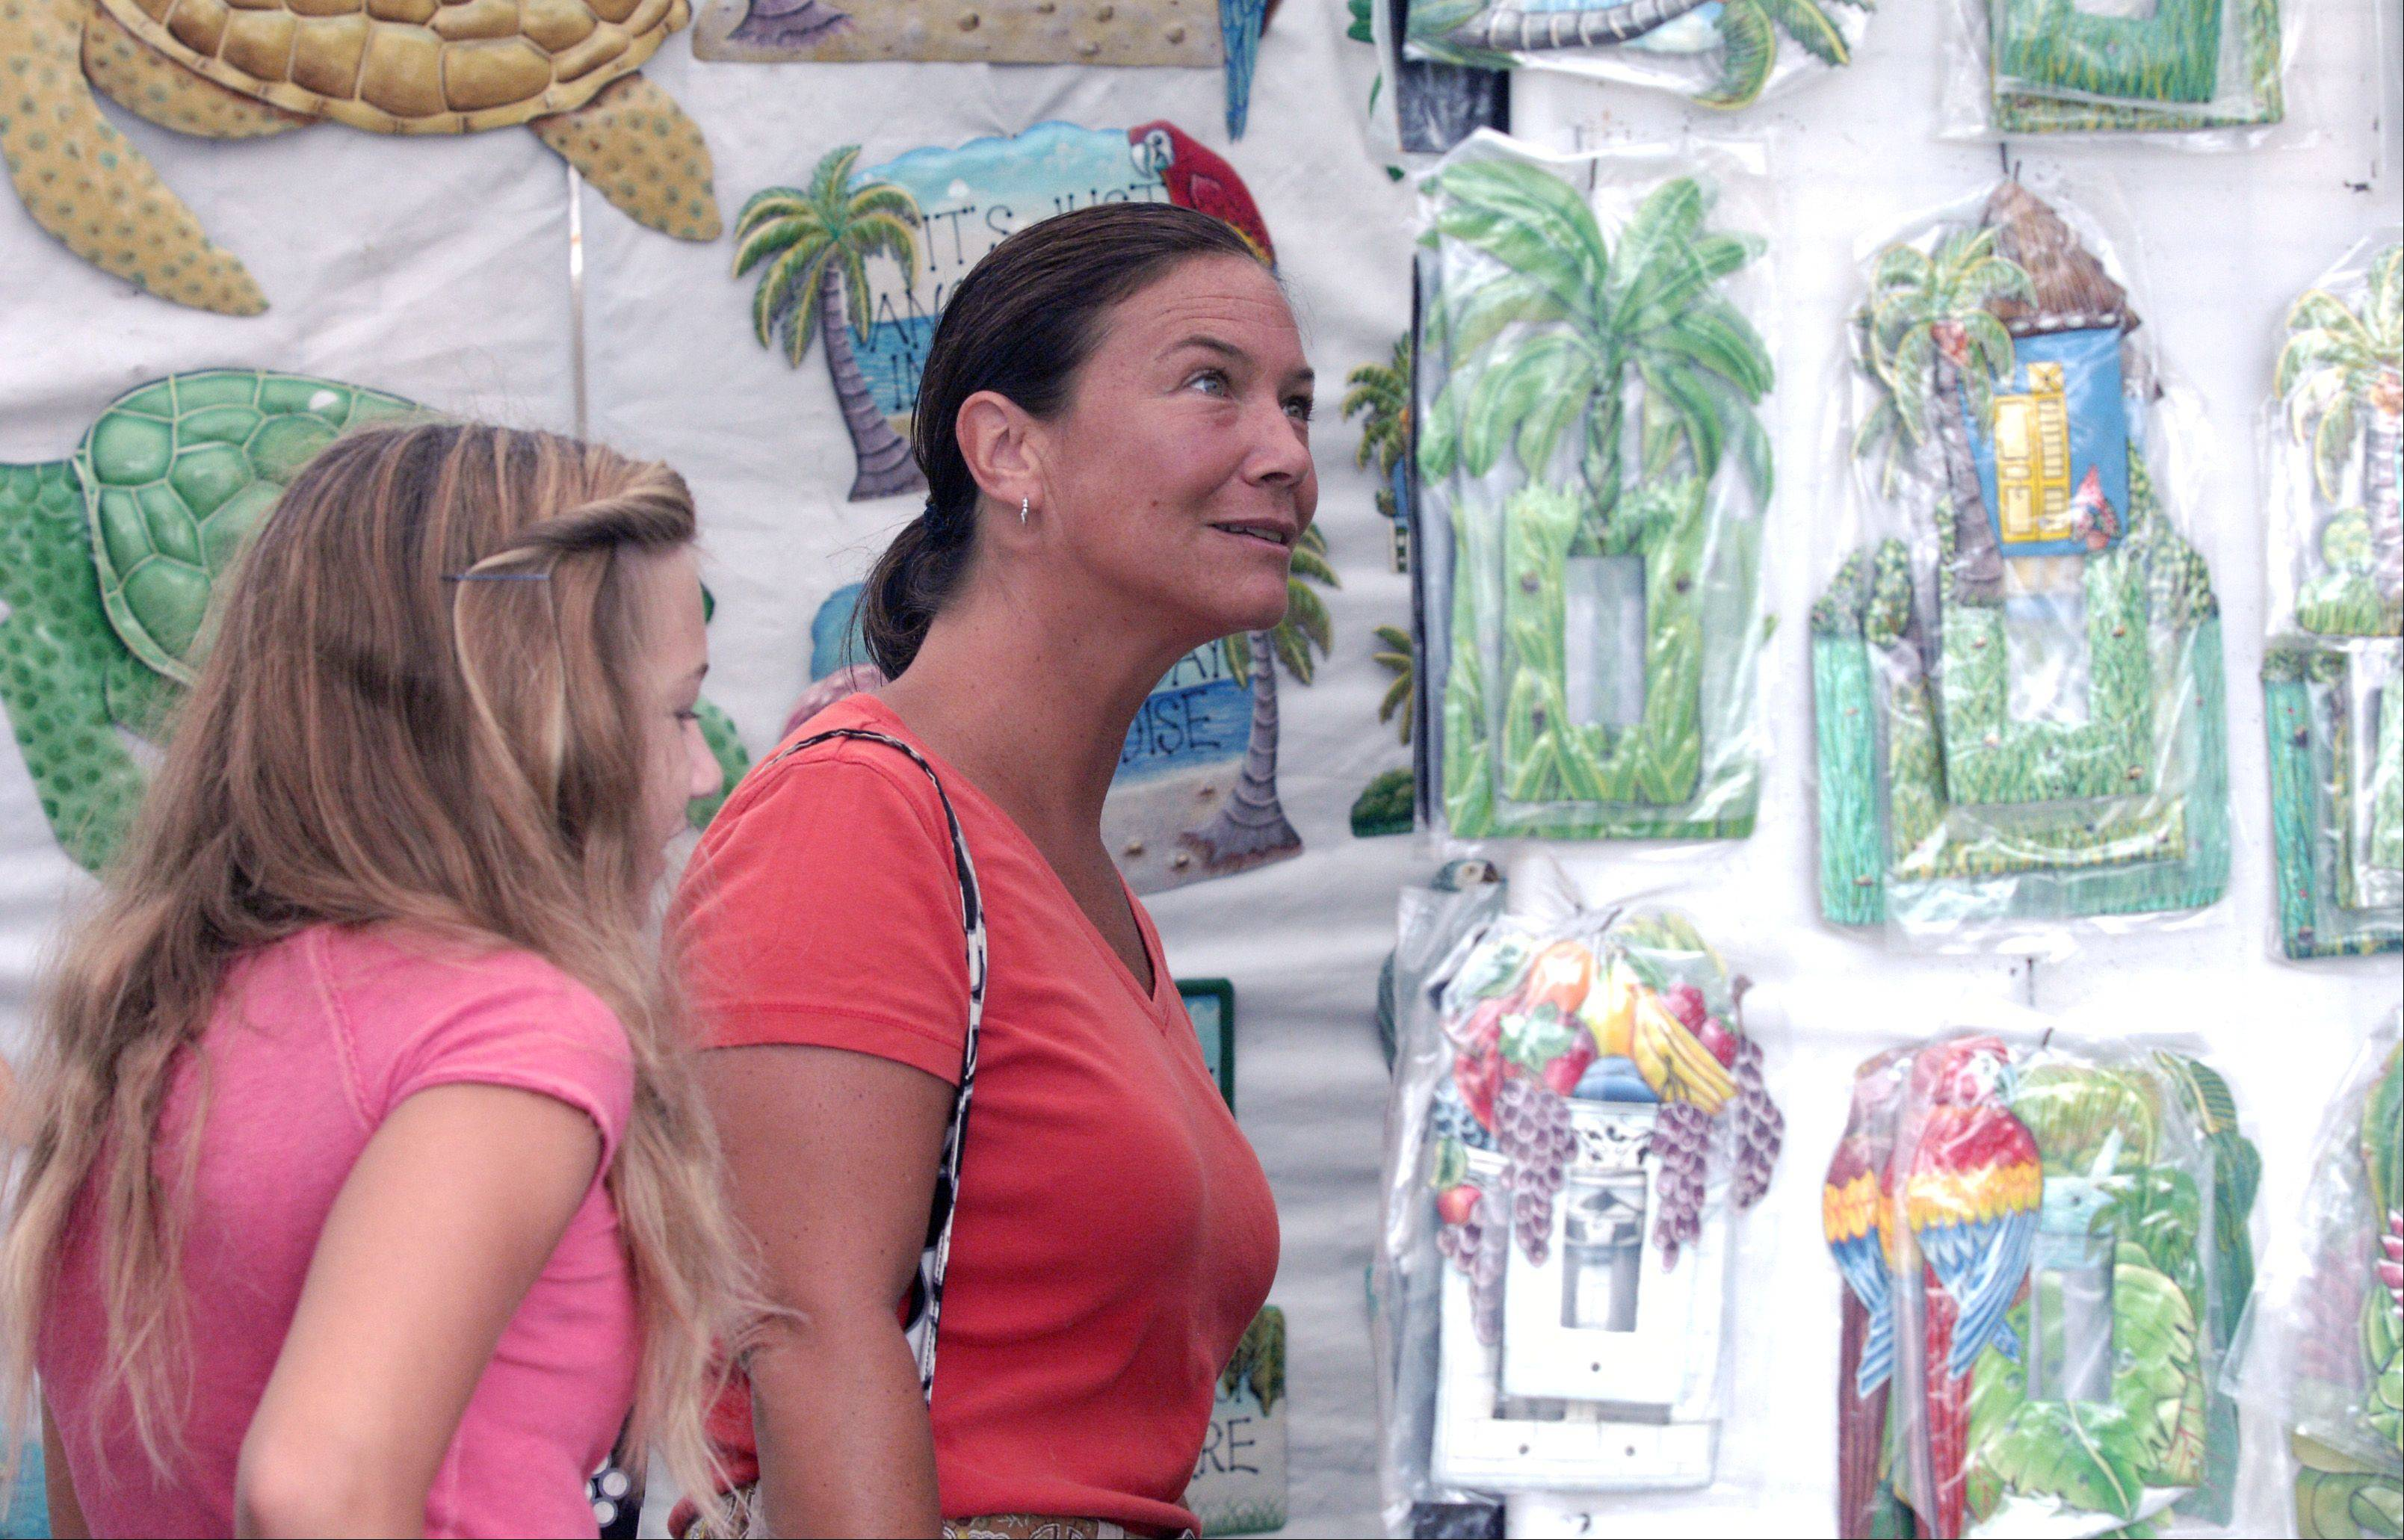 Visitors to the Glen Ellyn Festival of Arts on Saturday and Sunday will be able to view a range of art for sale.